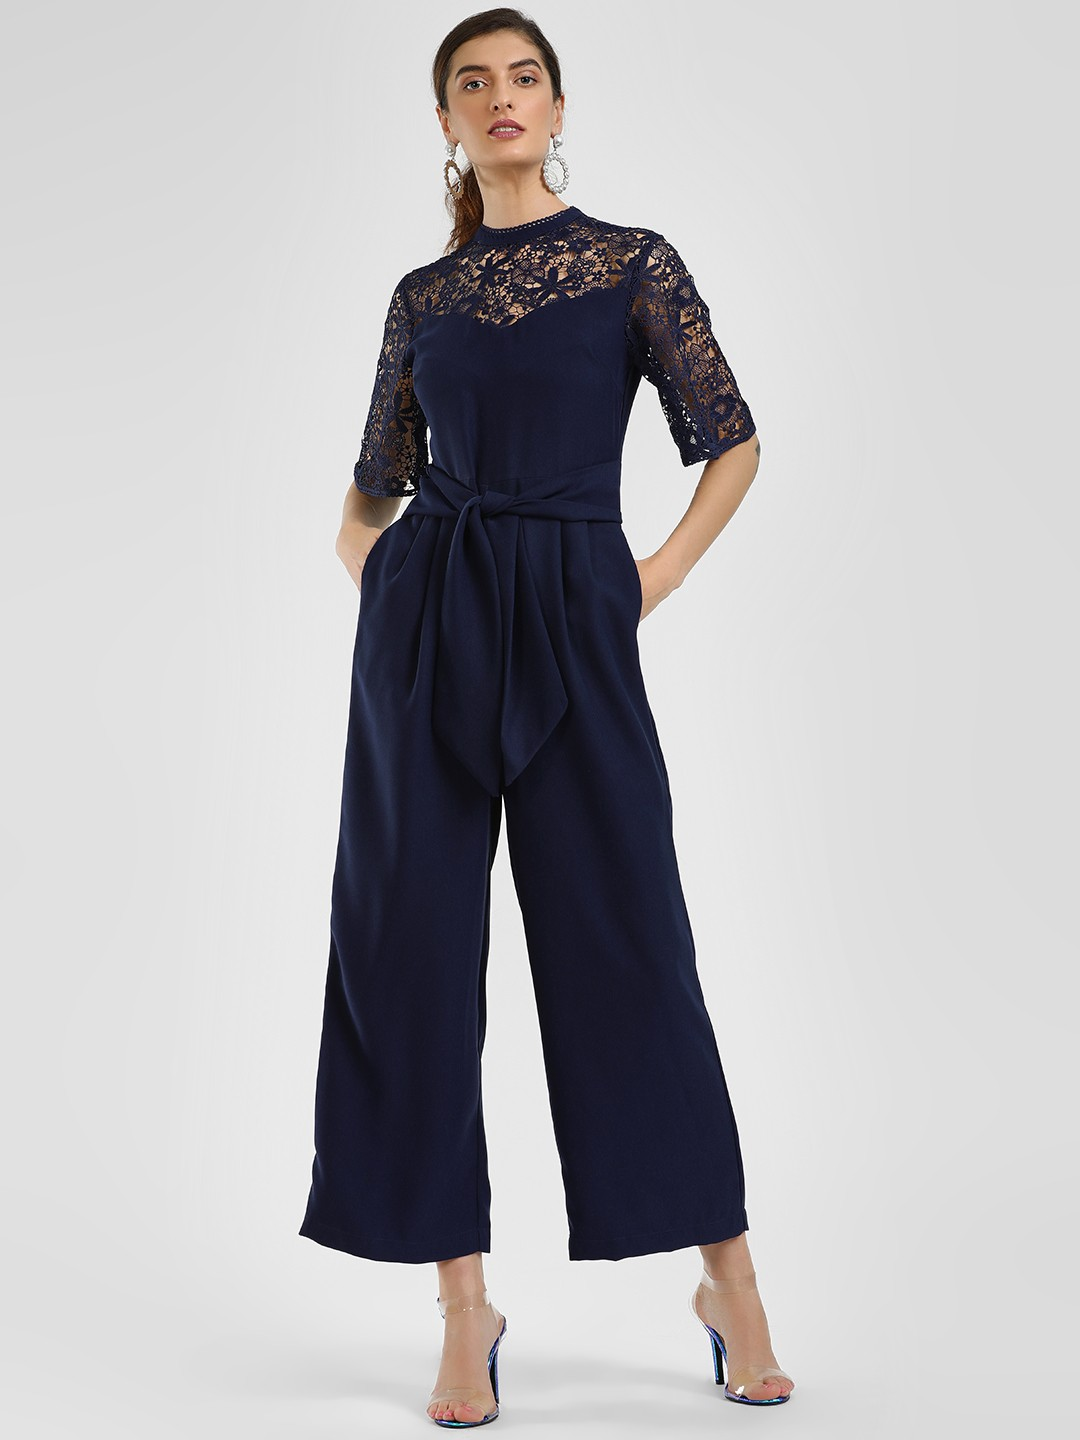 Cover Story Navy Blue Lace Embroidered Tie-Up Jumpsuit 1